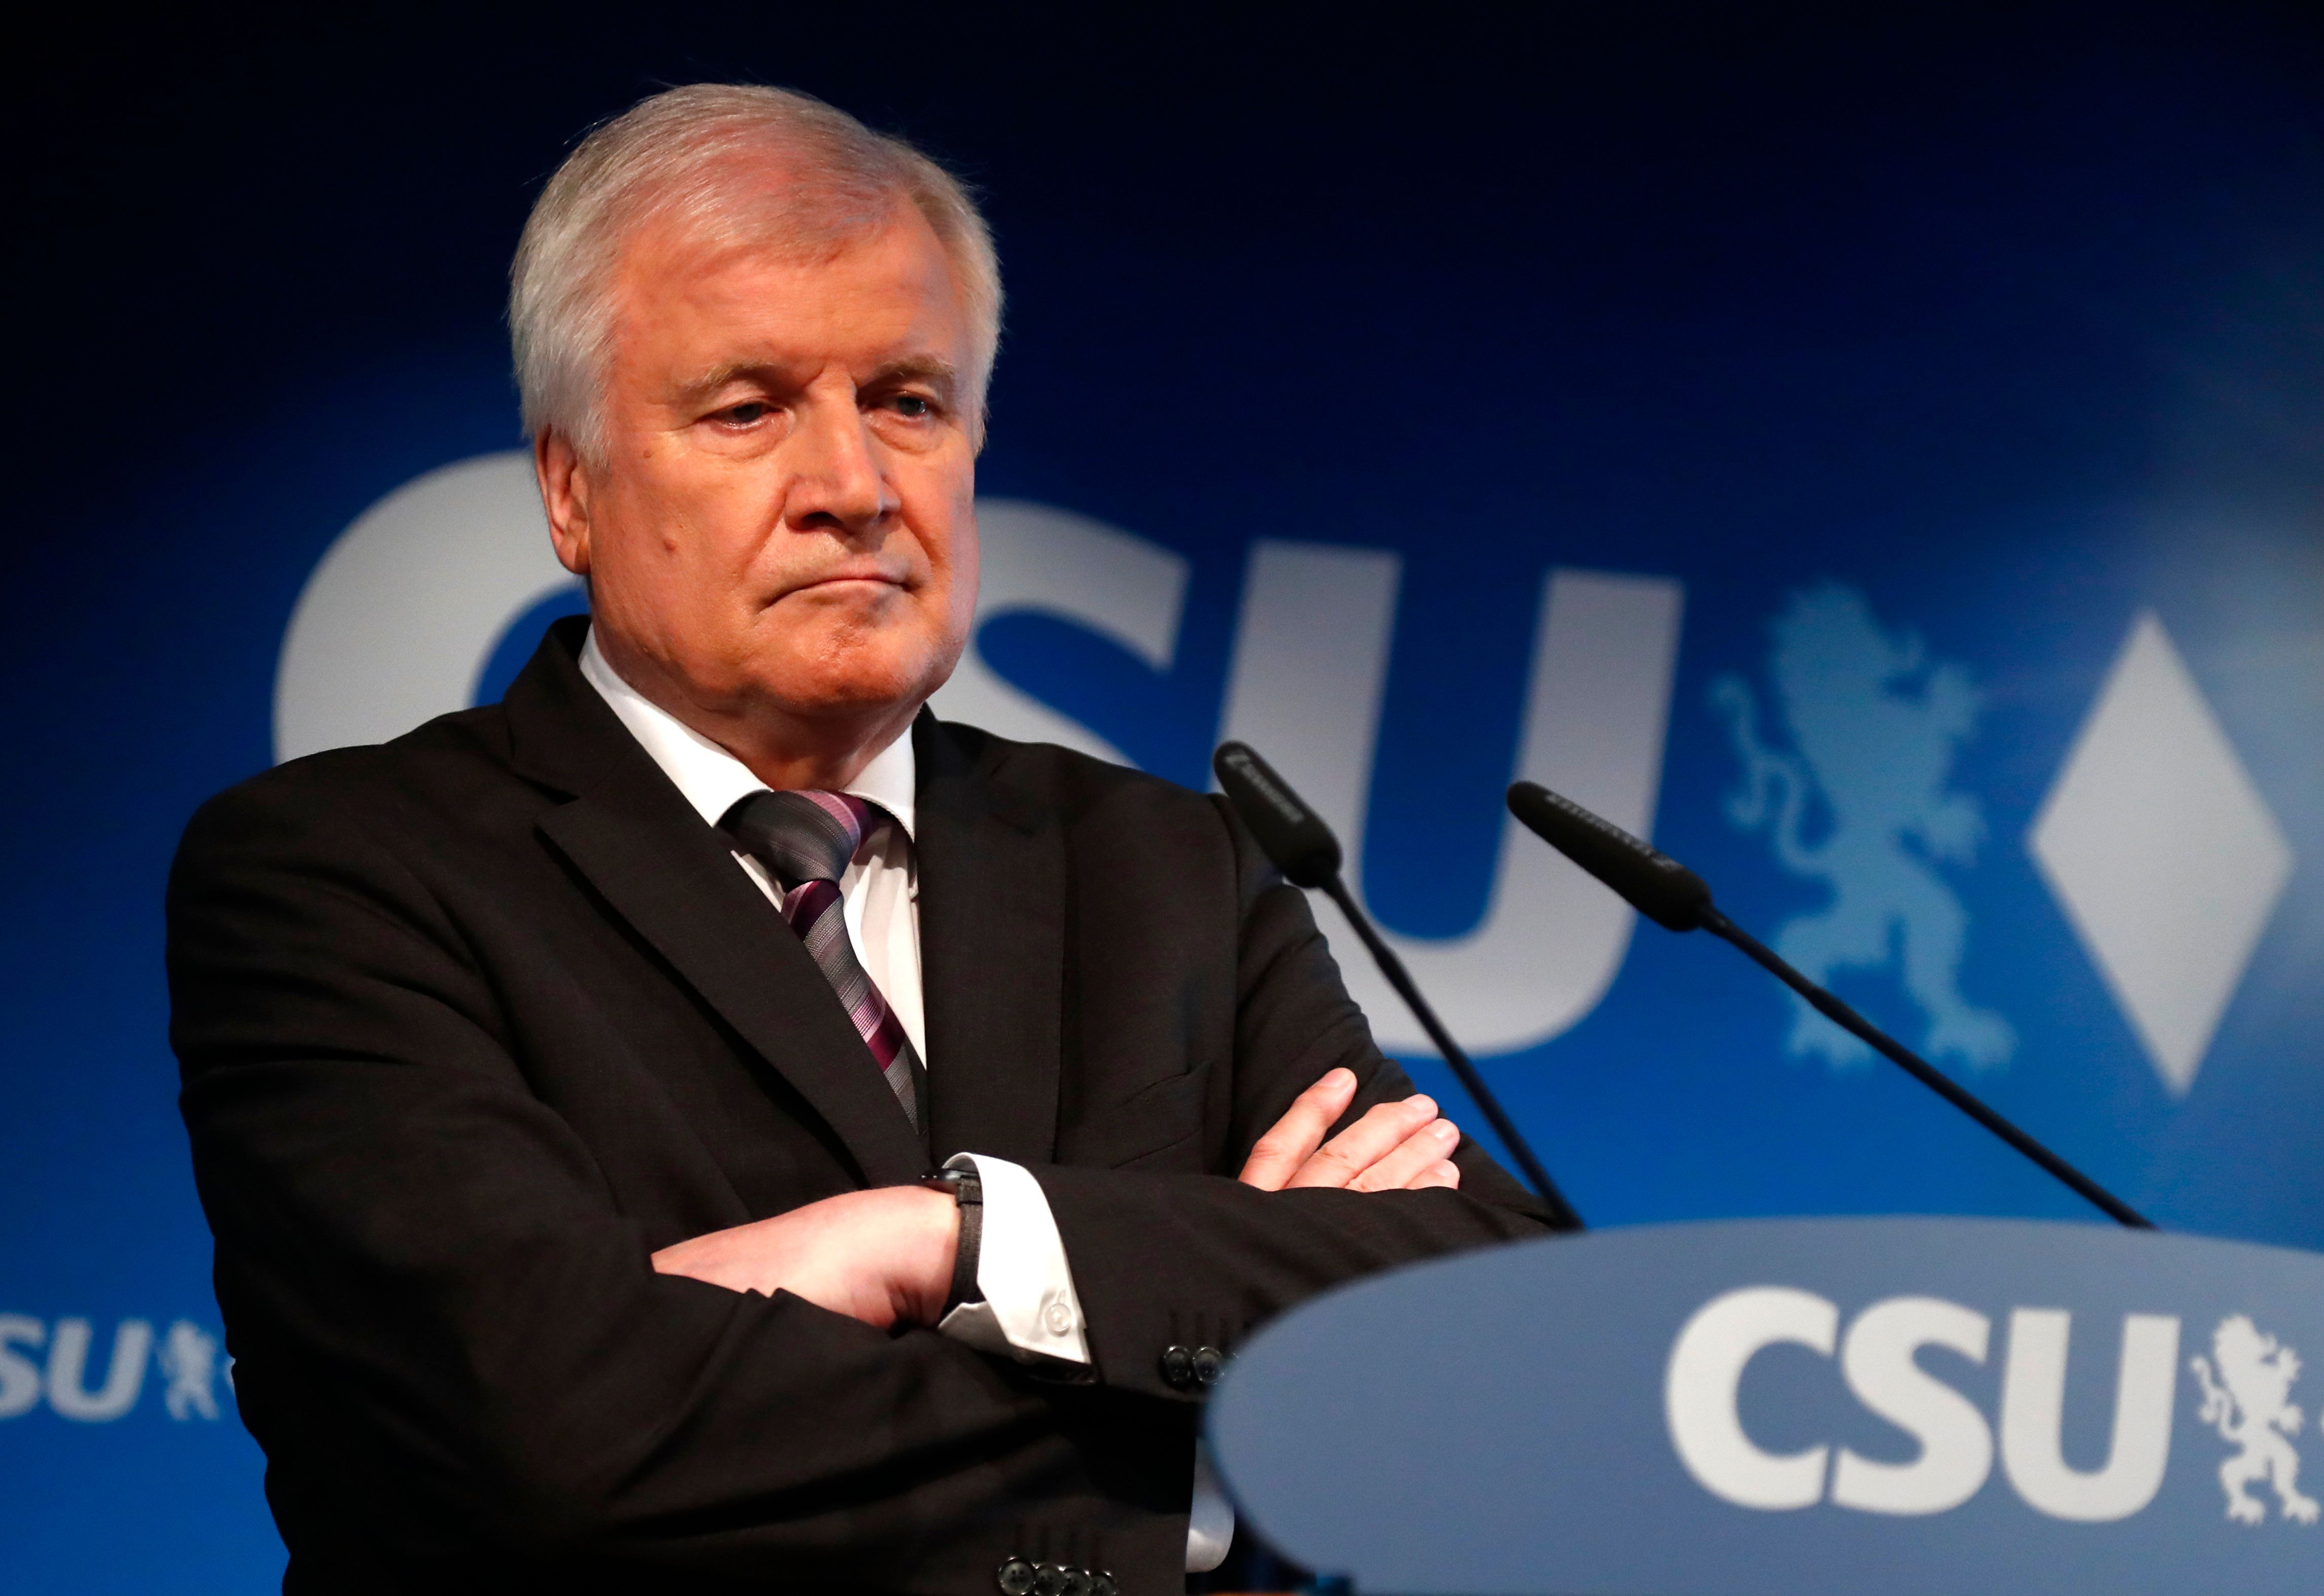 German Interior Minister and CSU chairman Horst Seehofer attends a press conference at the headquarters of the Christian Social Union, CSU, in Munich, Germany, Monday, Oct. 15, 2018, the day after their party lost the absolute majority in Bavaria's state parliament by a wide margin. (AP Photo/Matthias Schrader)